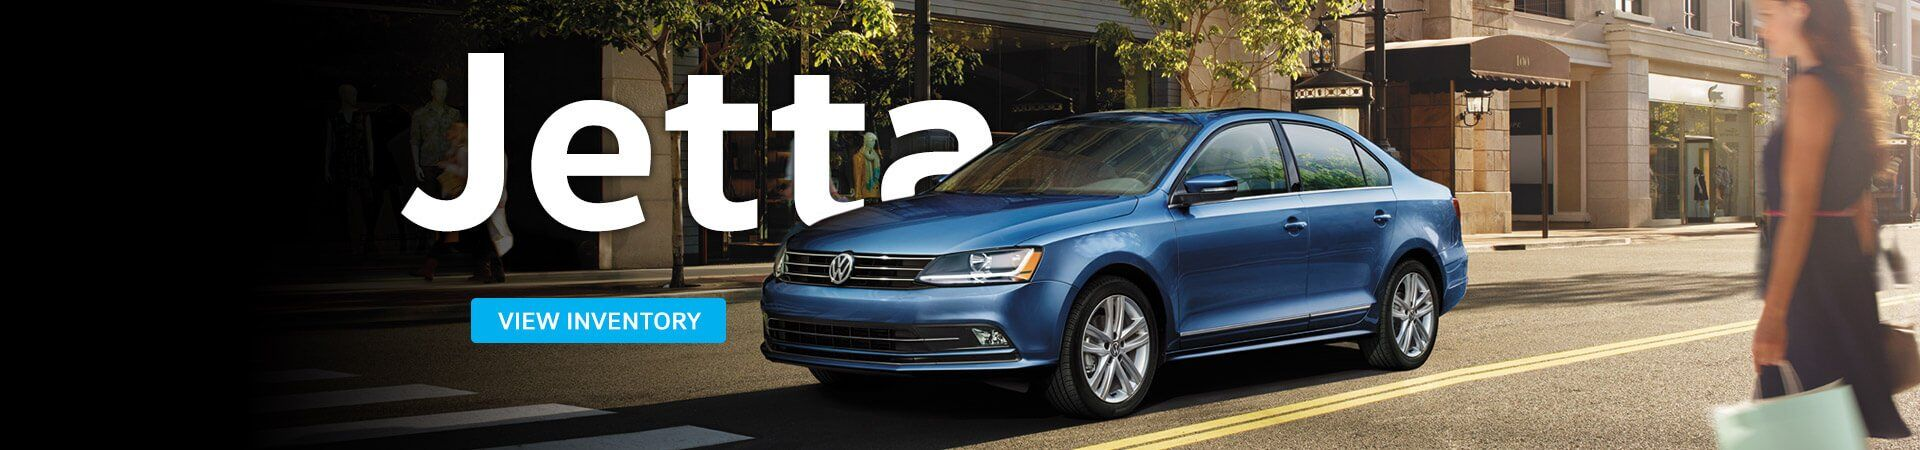 New VW Jetta near Sumter